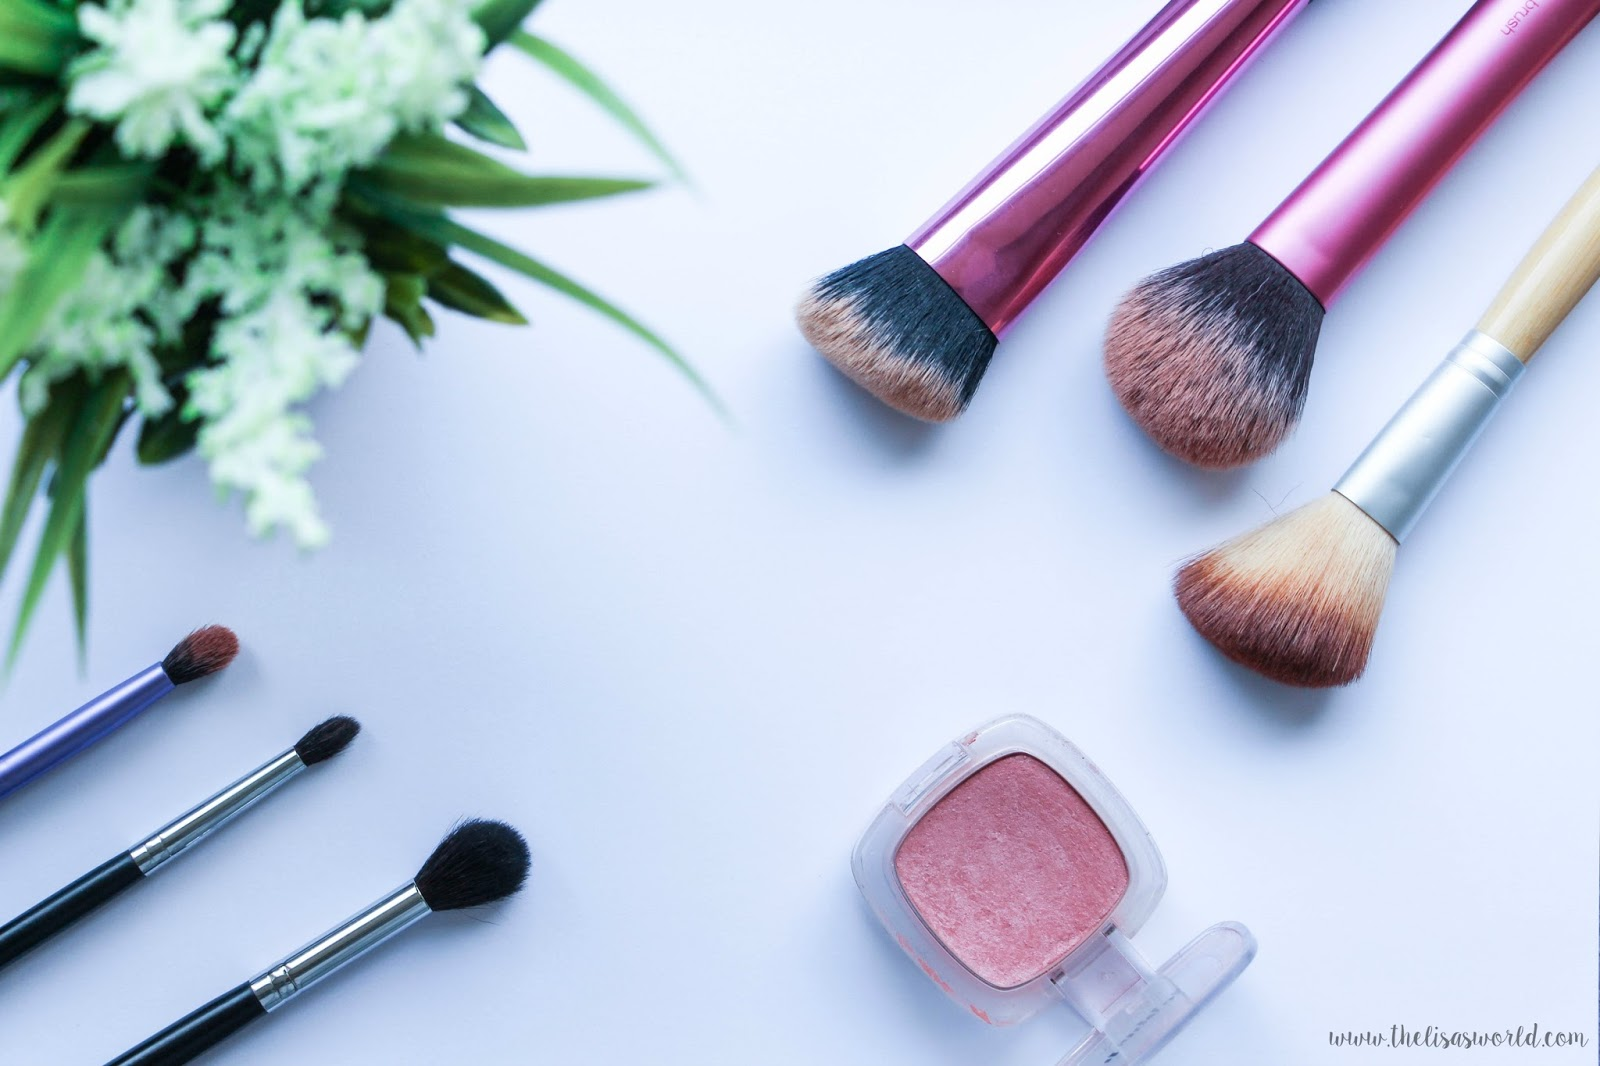 Top 6 Makeup Brushes